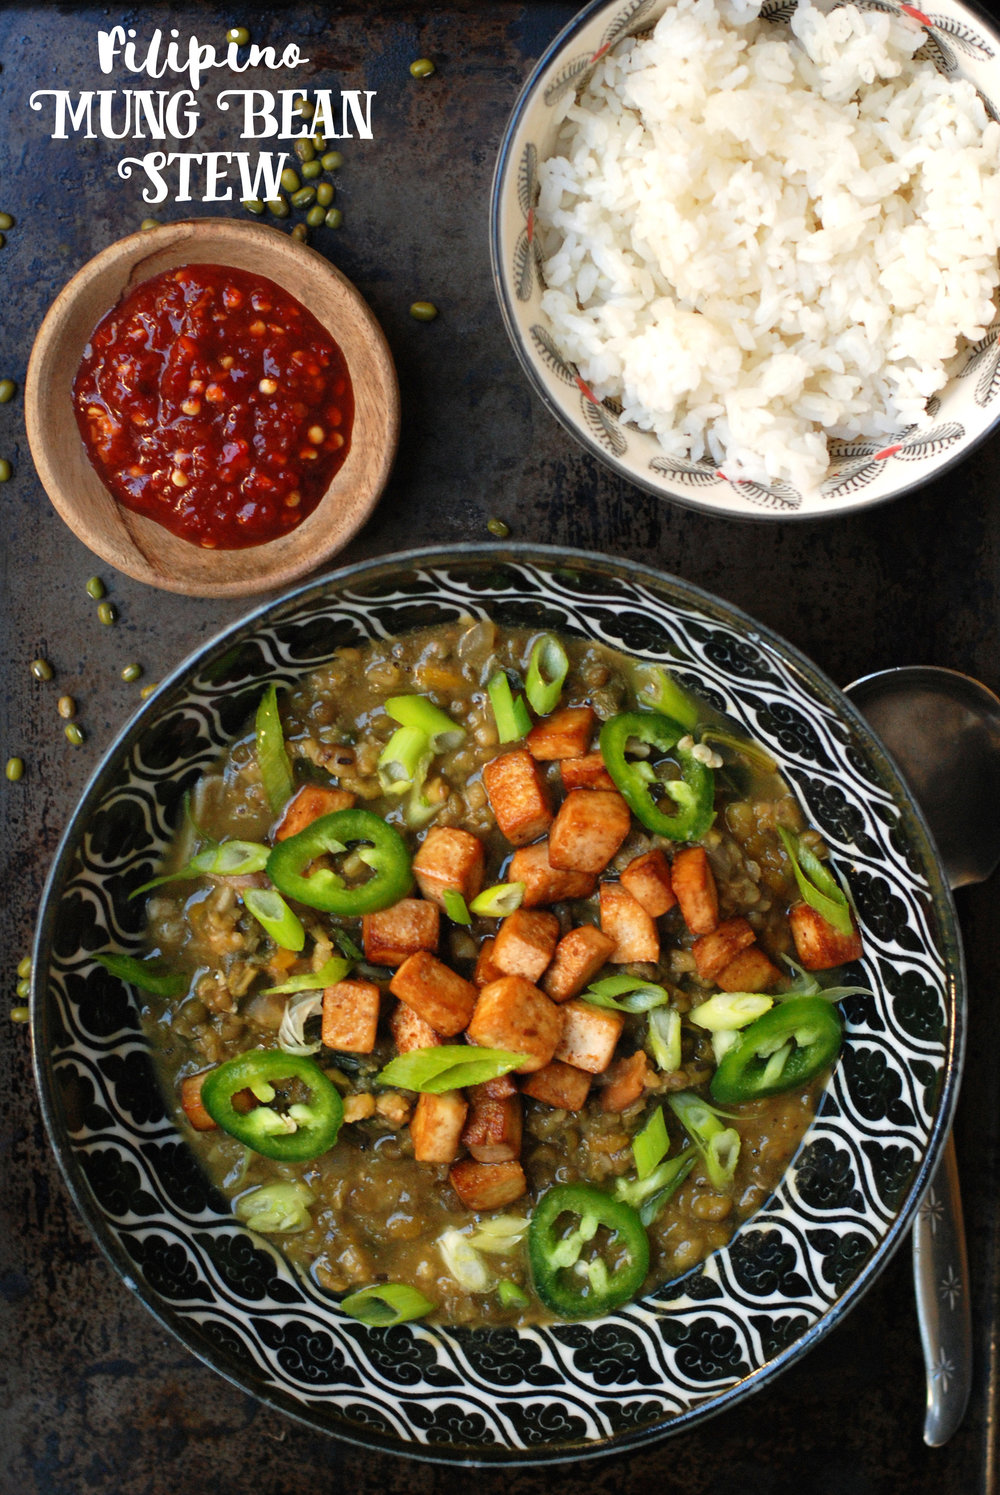 filipino-mung-bean-stew.jpg